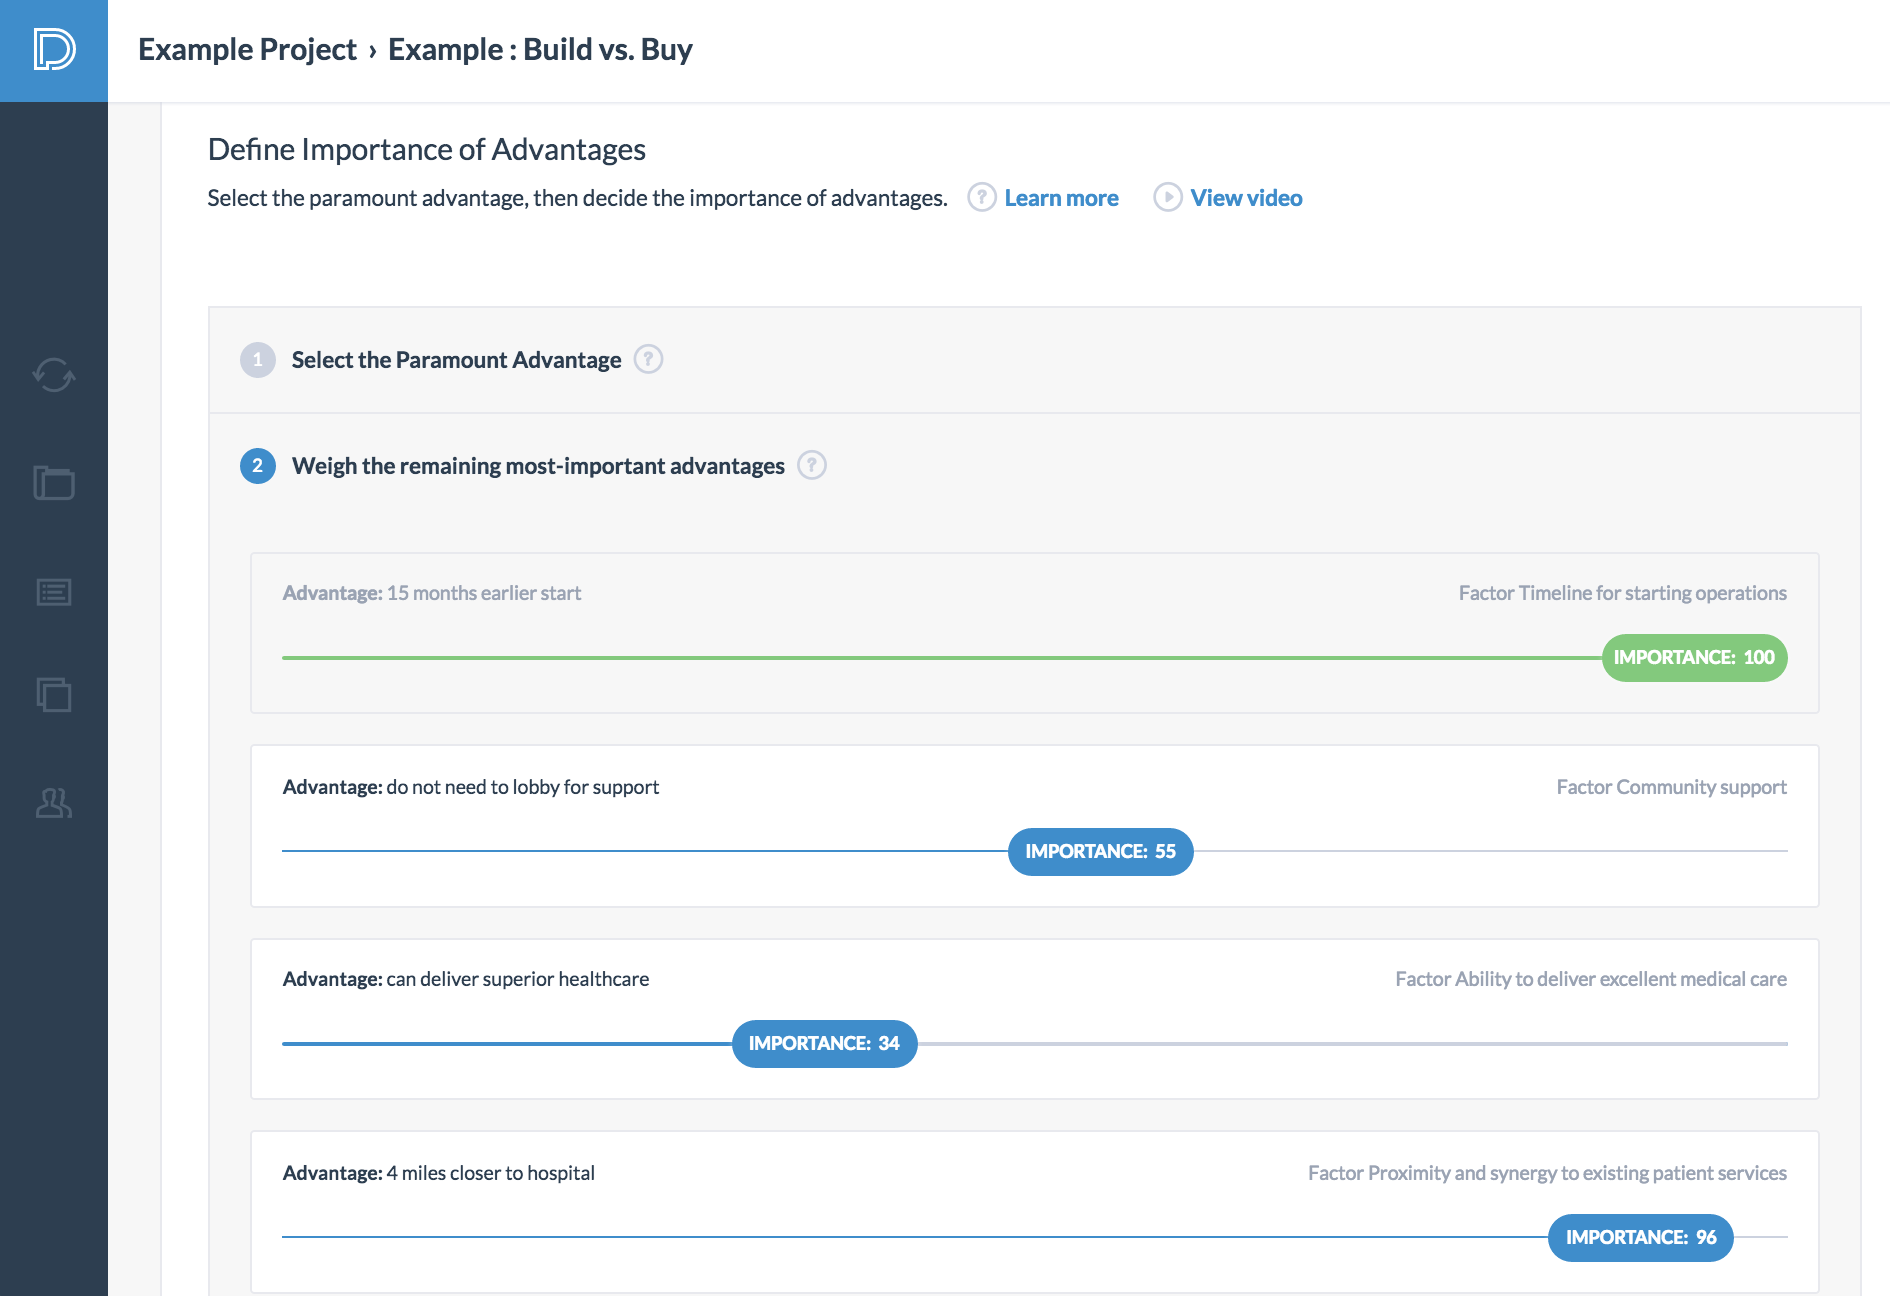 paramount decisions buy or build use case step 7 define cost